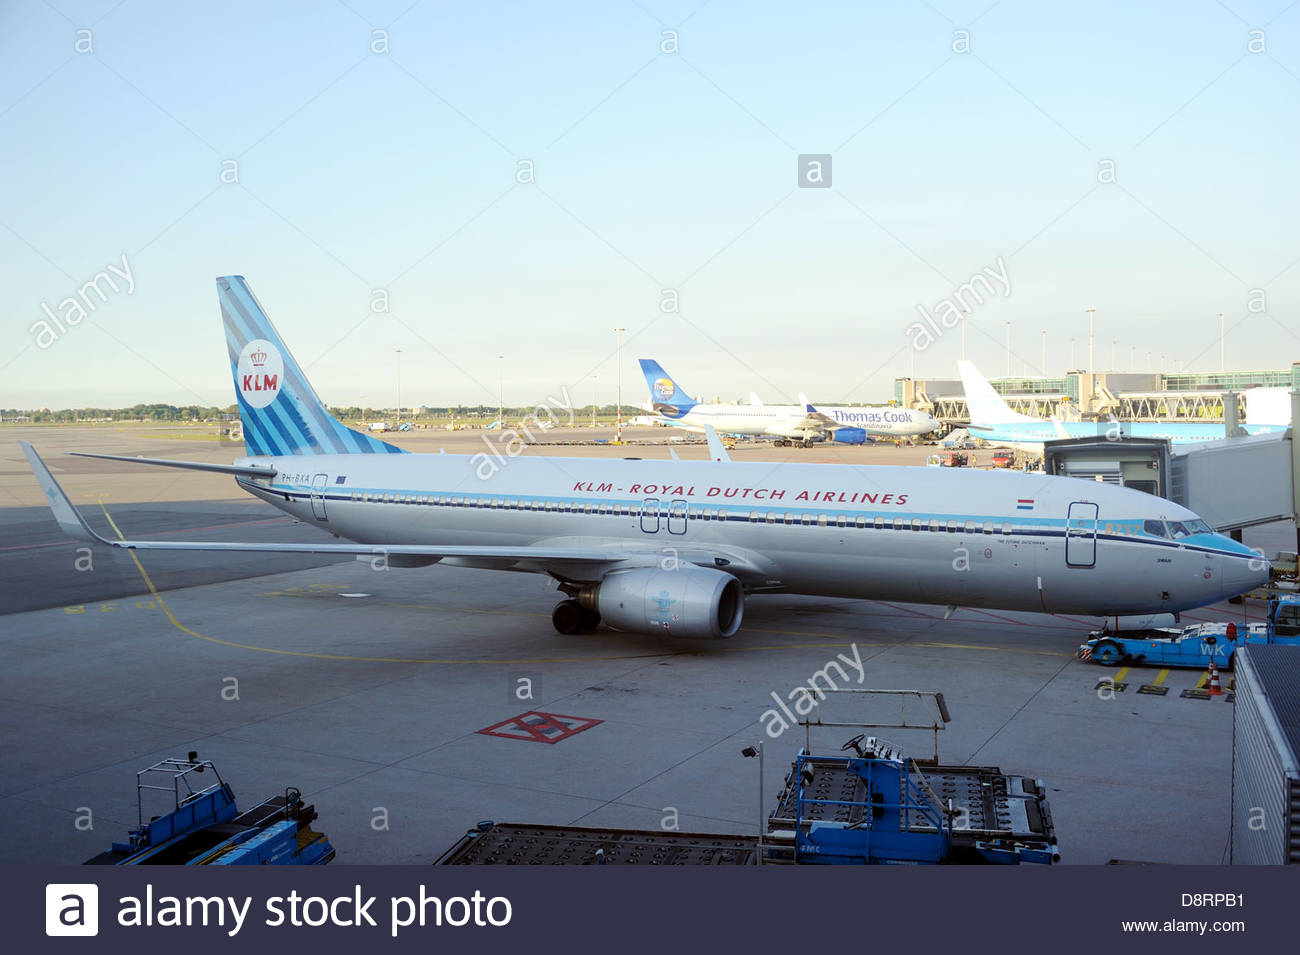 Amsterdam The Netherlands KLM Boeing 737 PH-BXA in retro livery. - Stock Image